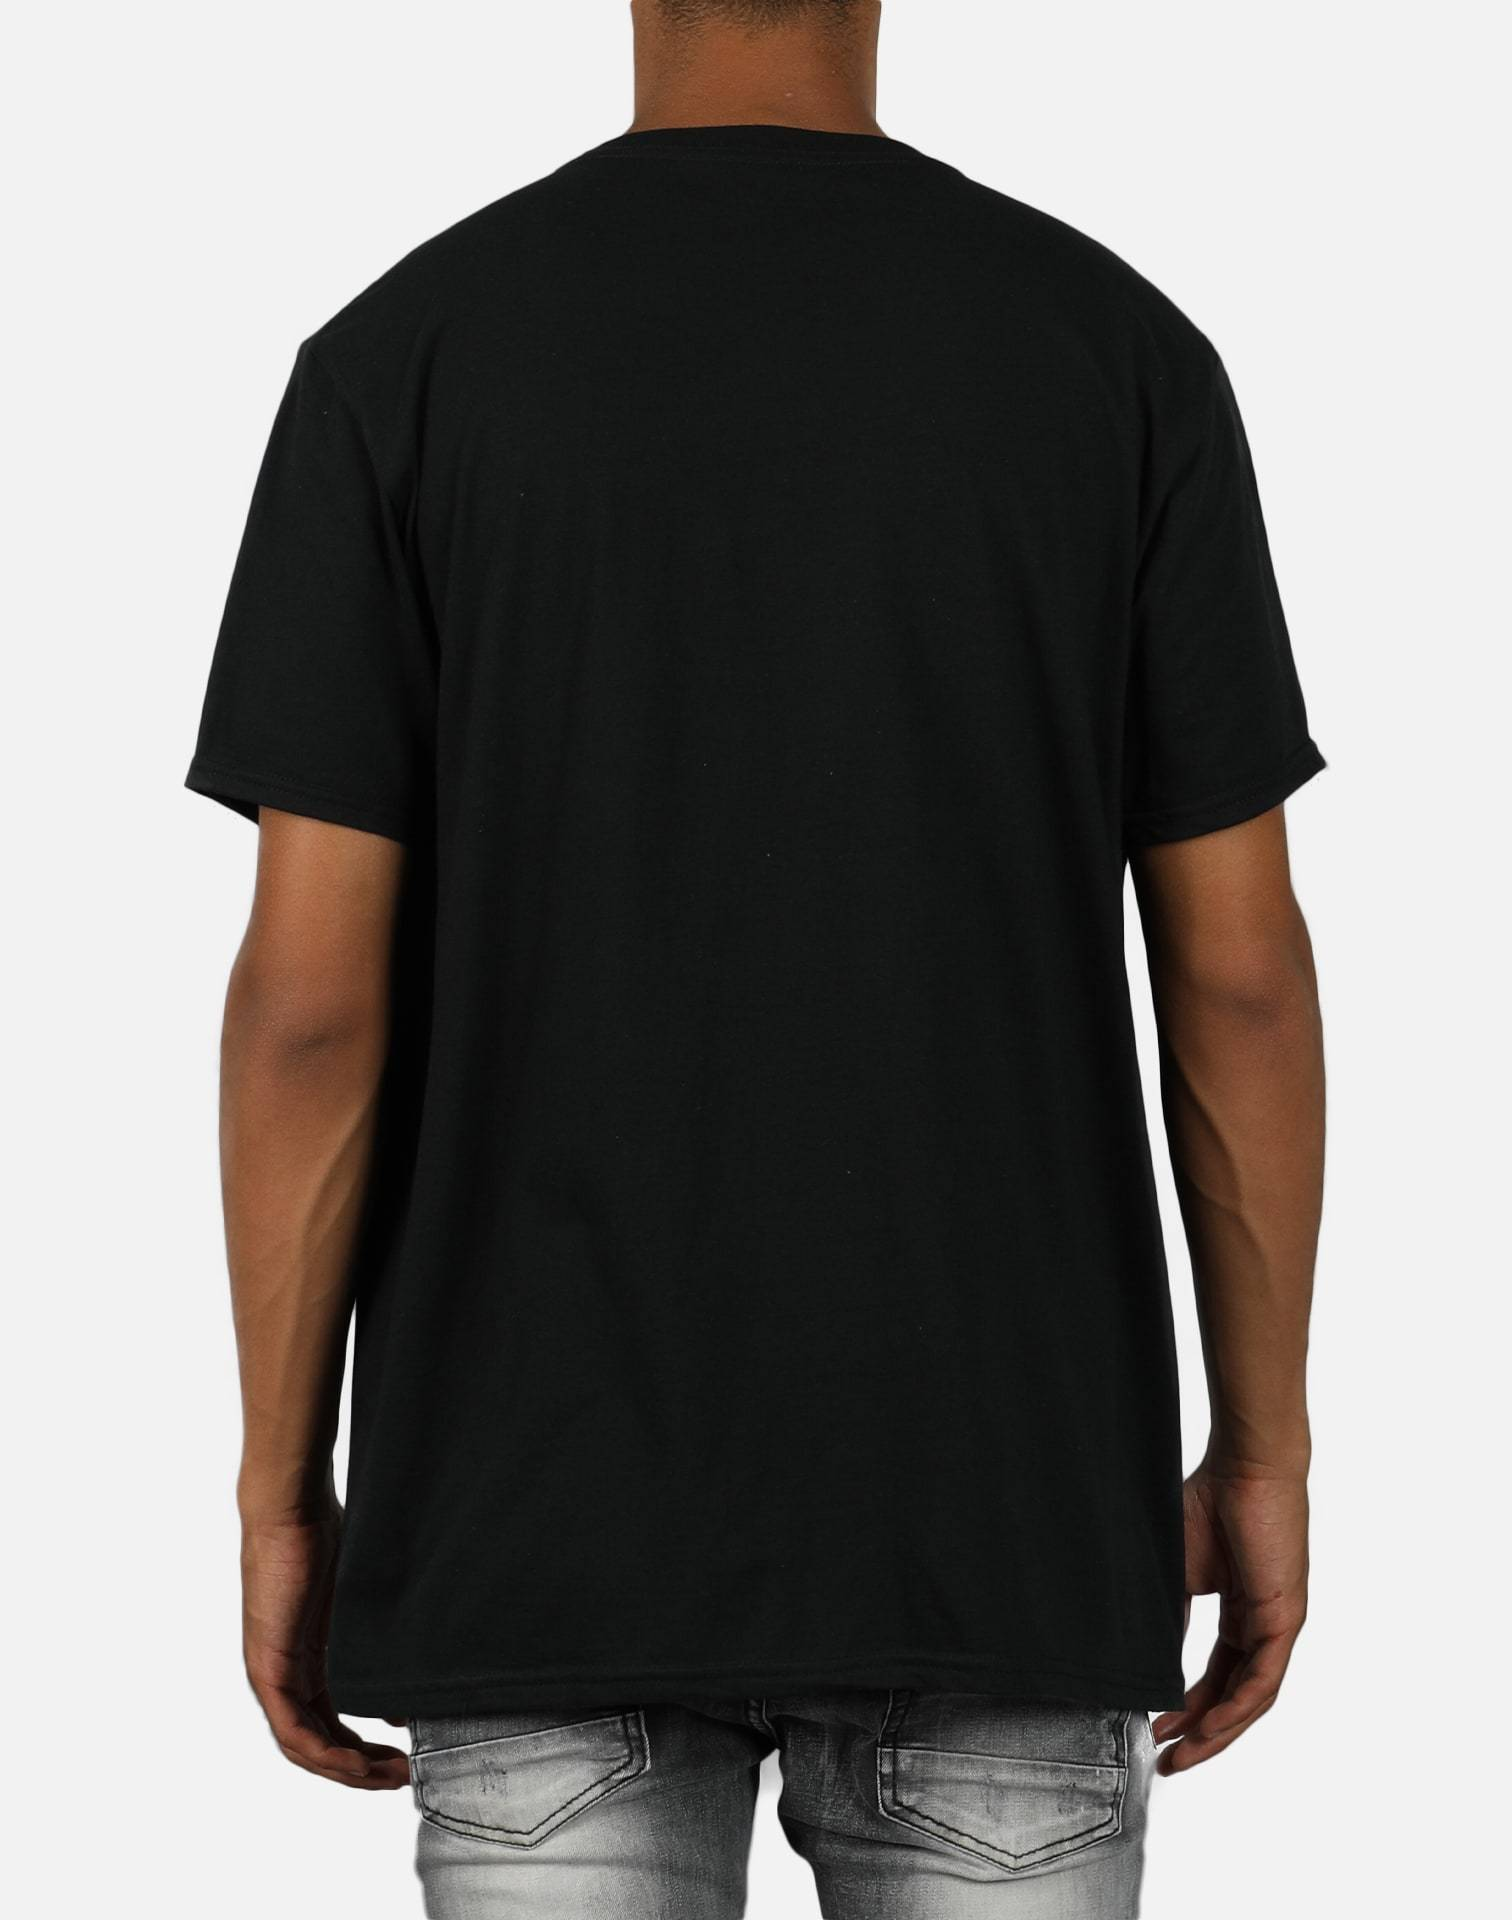 Black Love Men's Loyalty Tee